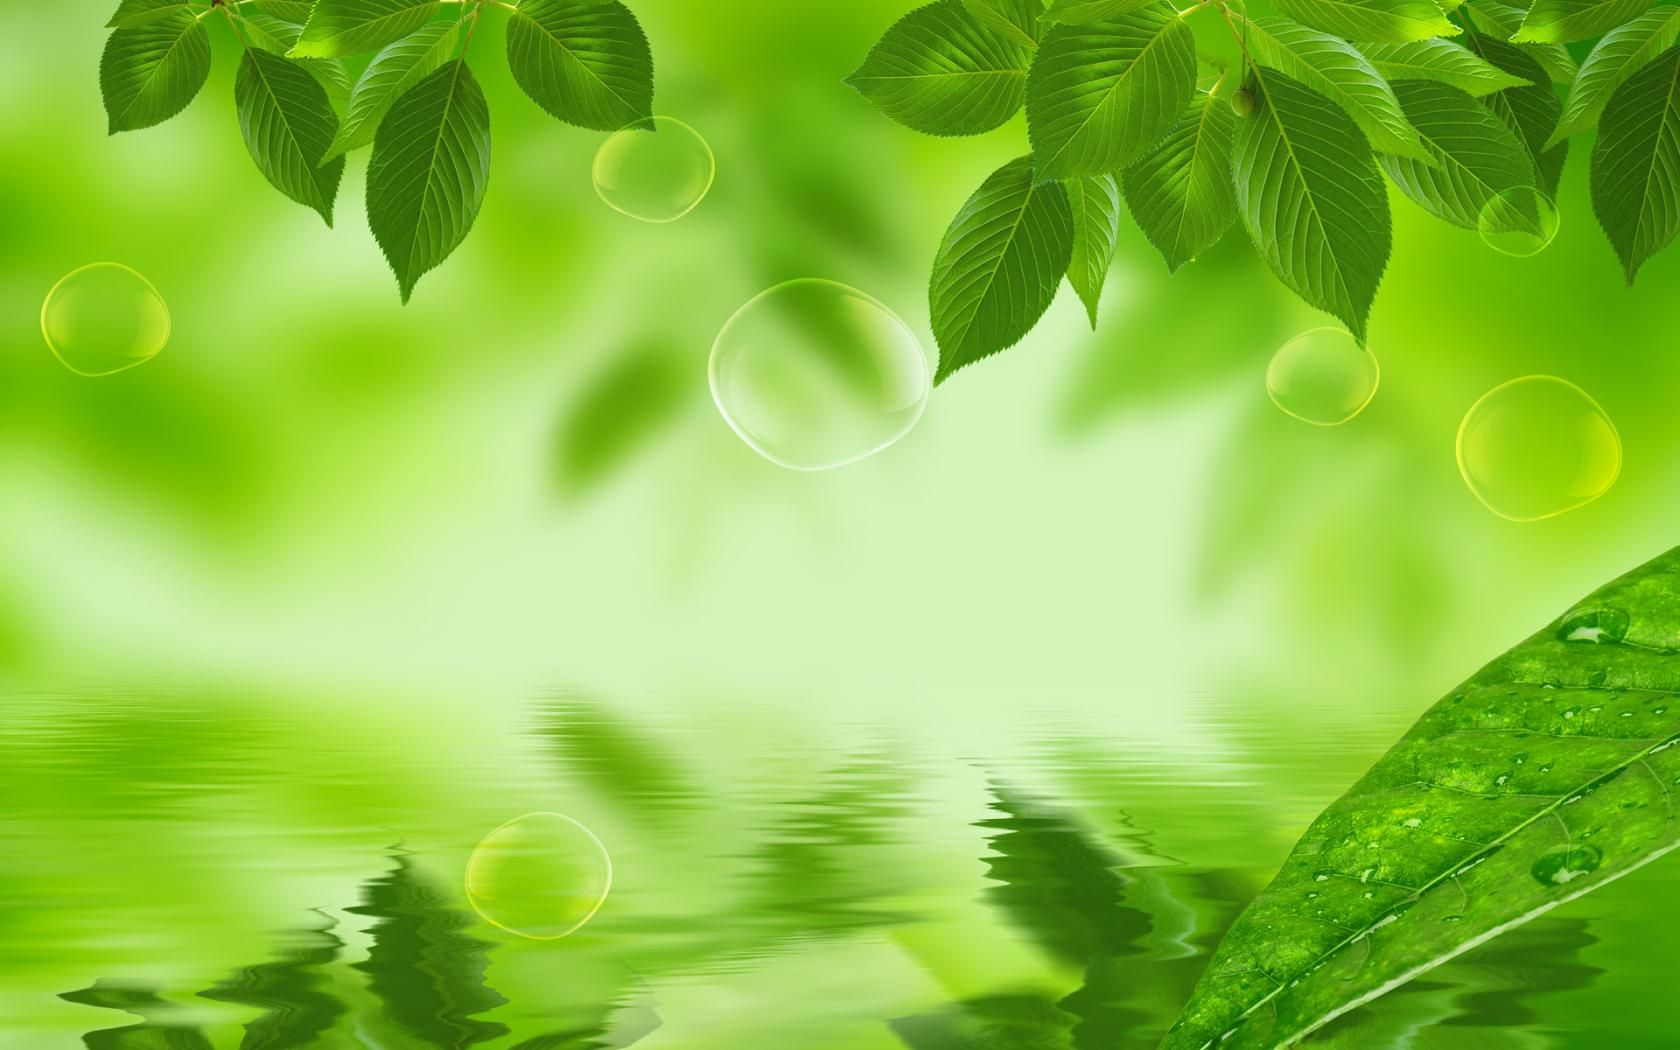 green nature background hd - photo #18